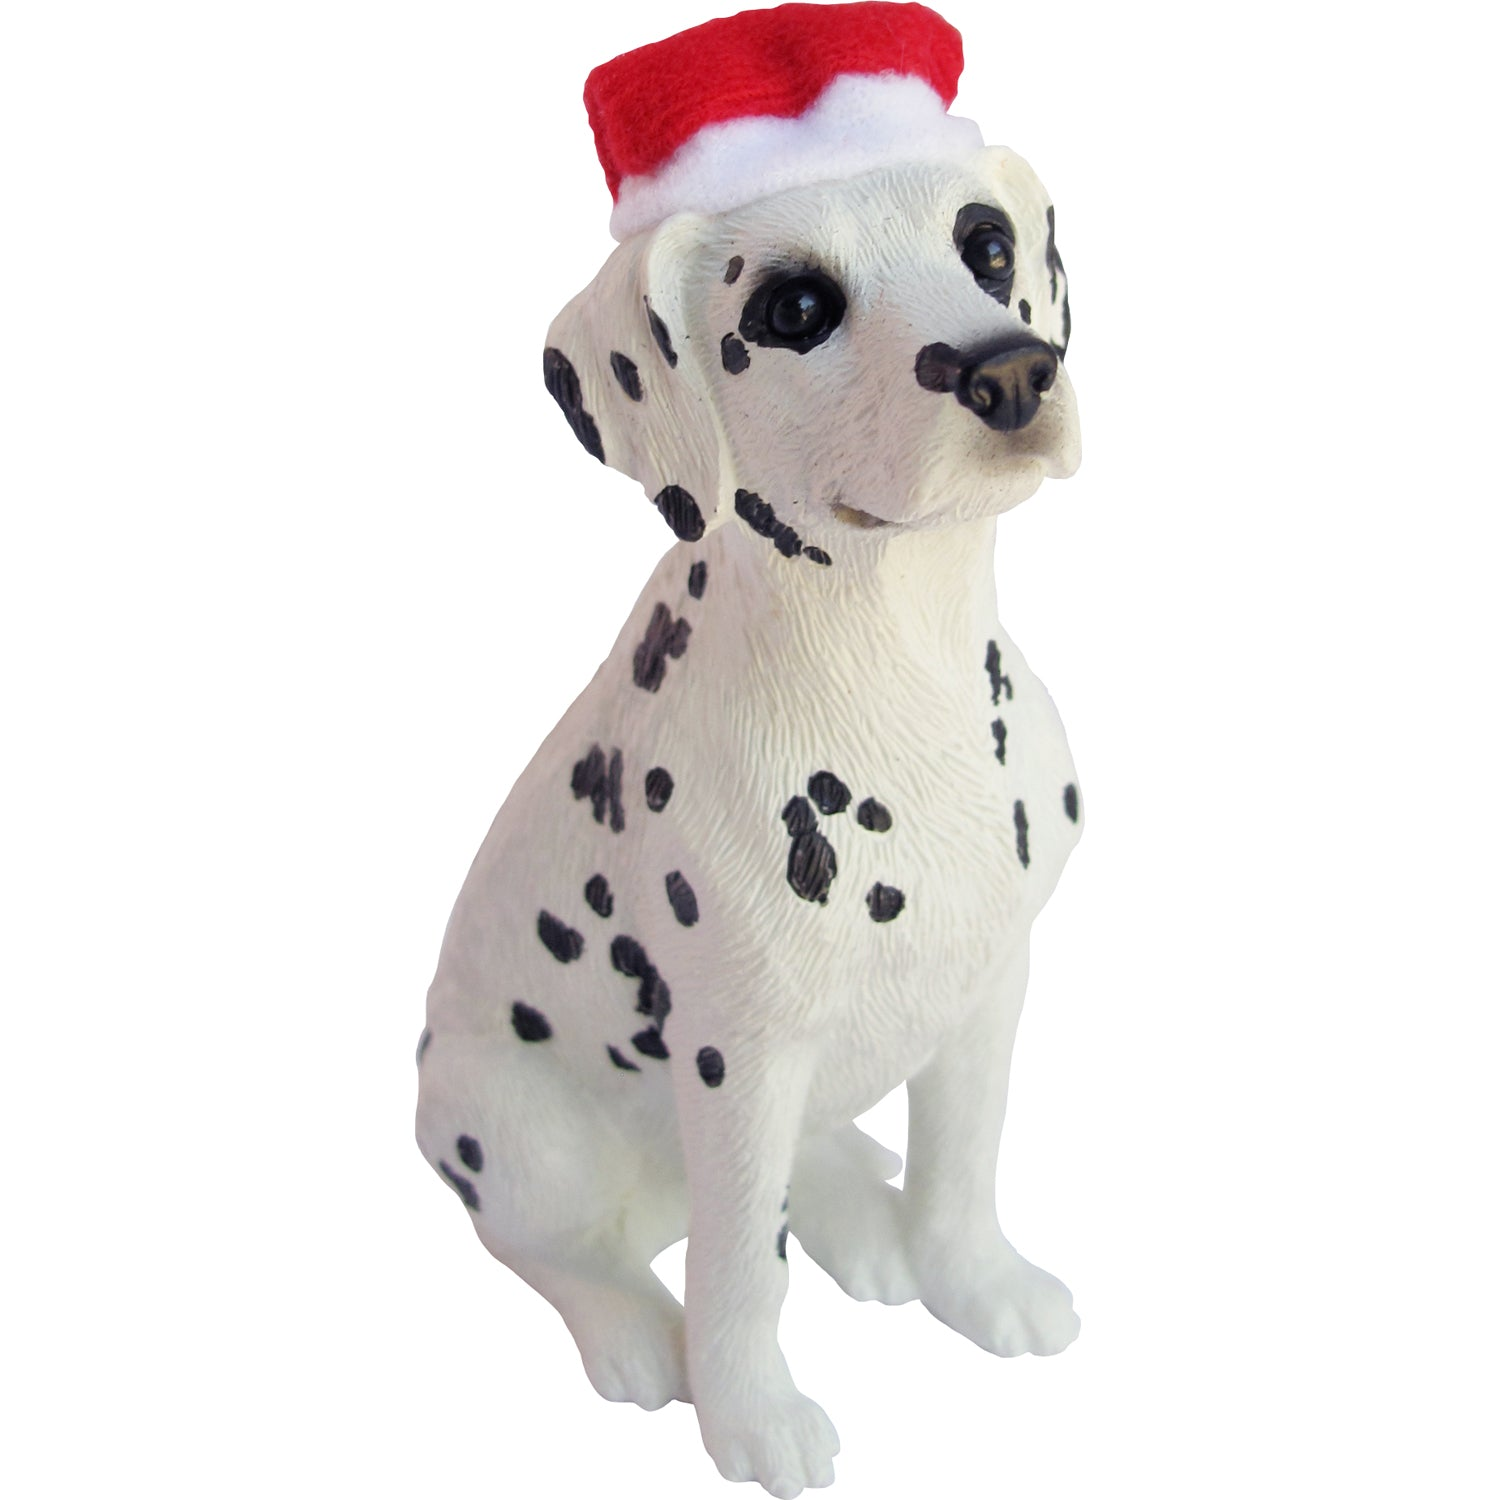 Sandicast Sitting Dalmatian w/ Santa's Hat Christmas Dog Ornament